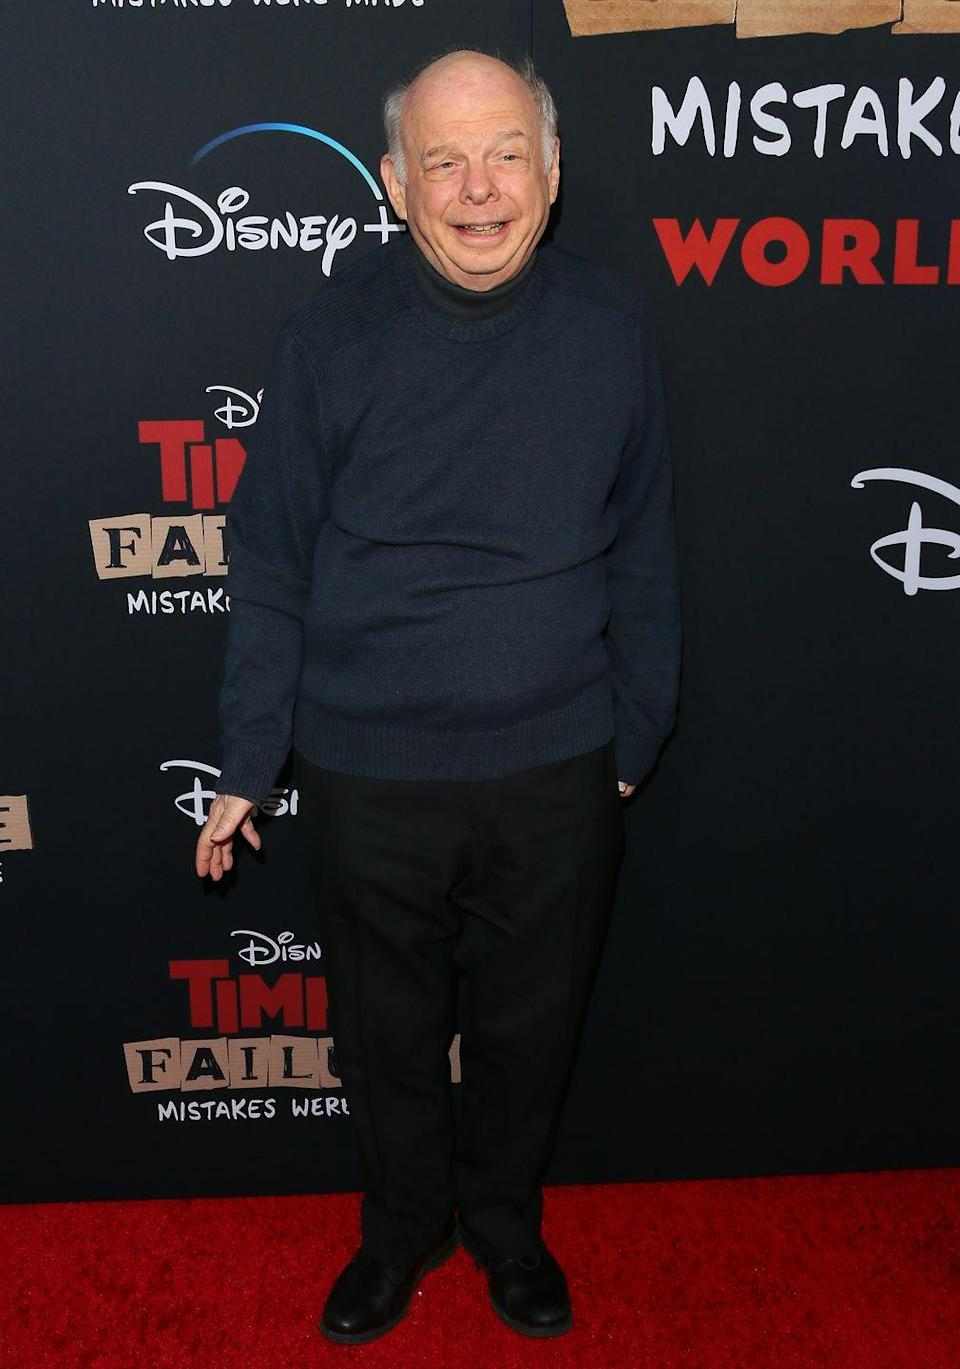 <p>Wallace hasn't stopped acting. You can find him in more recent hits like <em>Marriage Story, Young Sheldon, </em>and <em>Search Party</em>, just to name a few!</p>